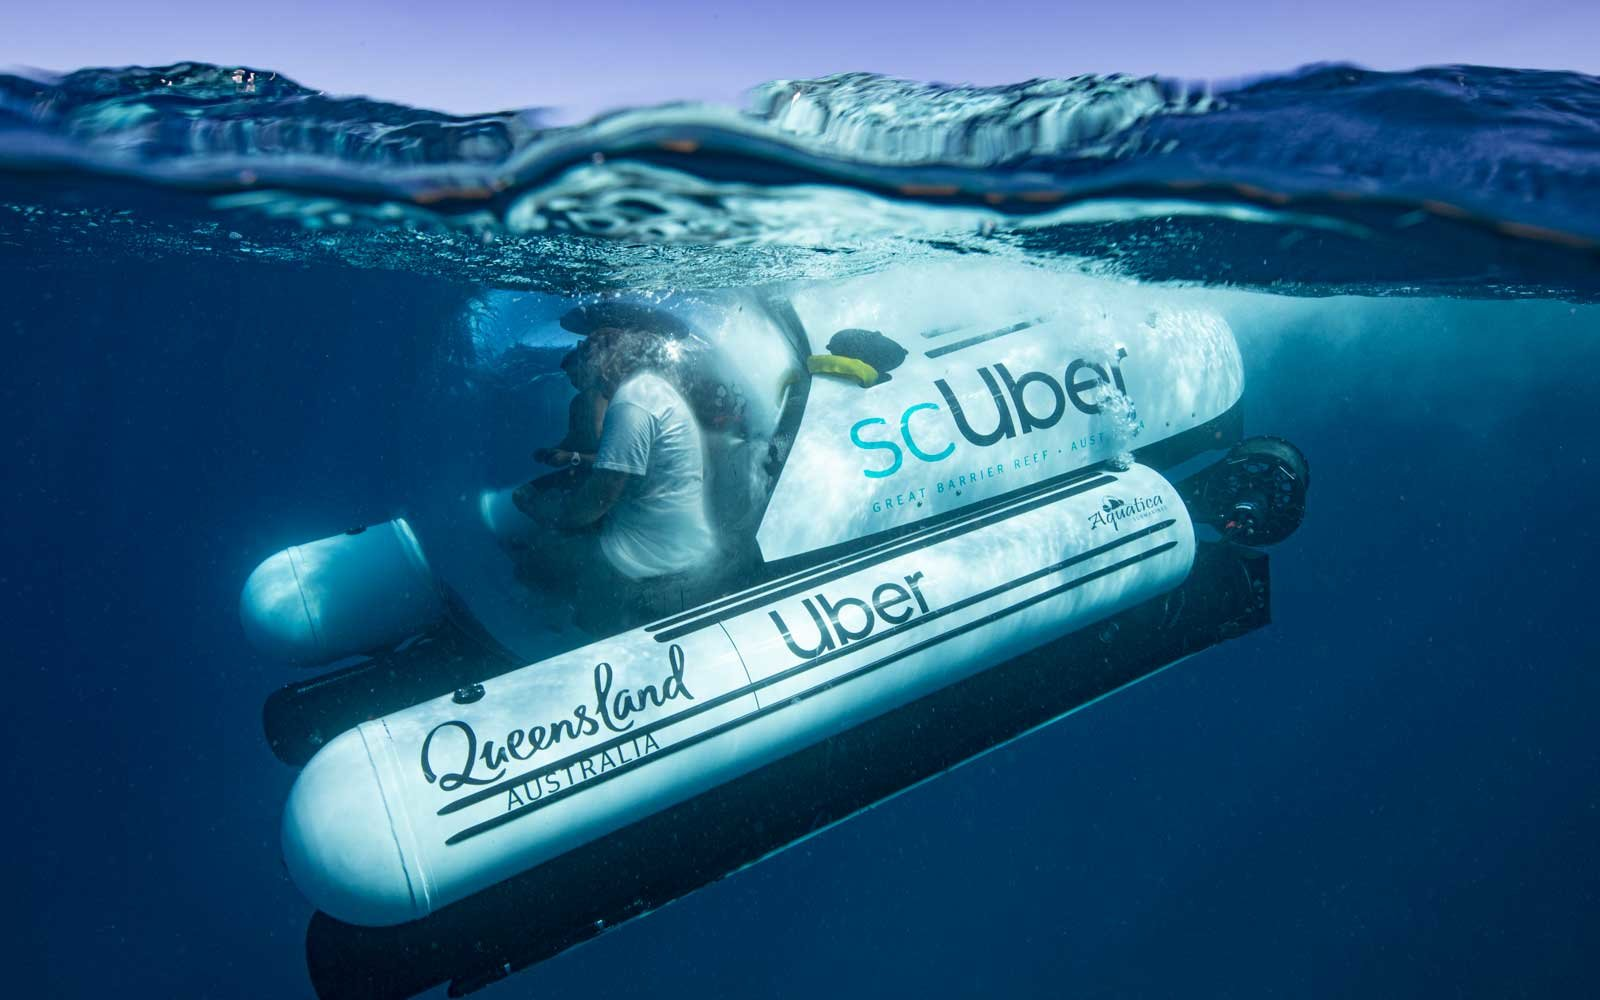 Meet ScUber, the World's First Rideshare Submarine by Uber